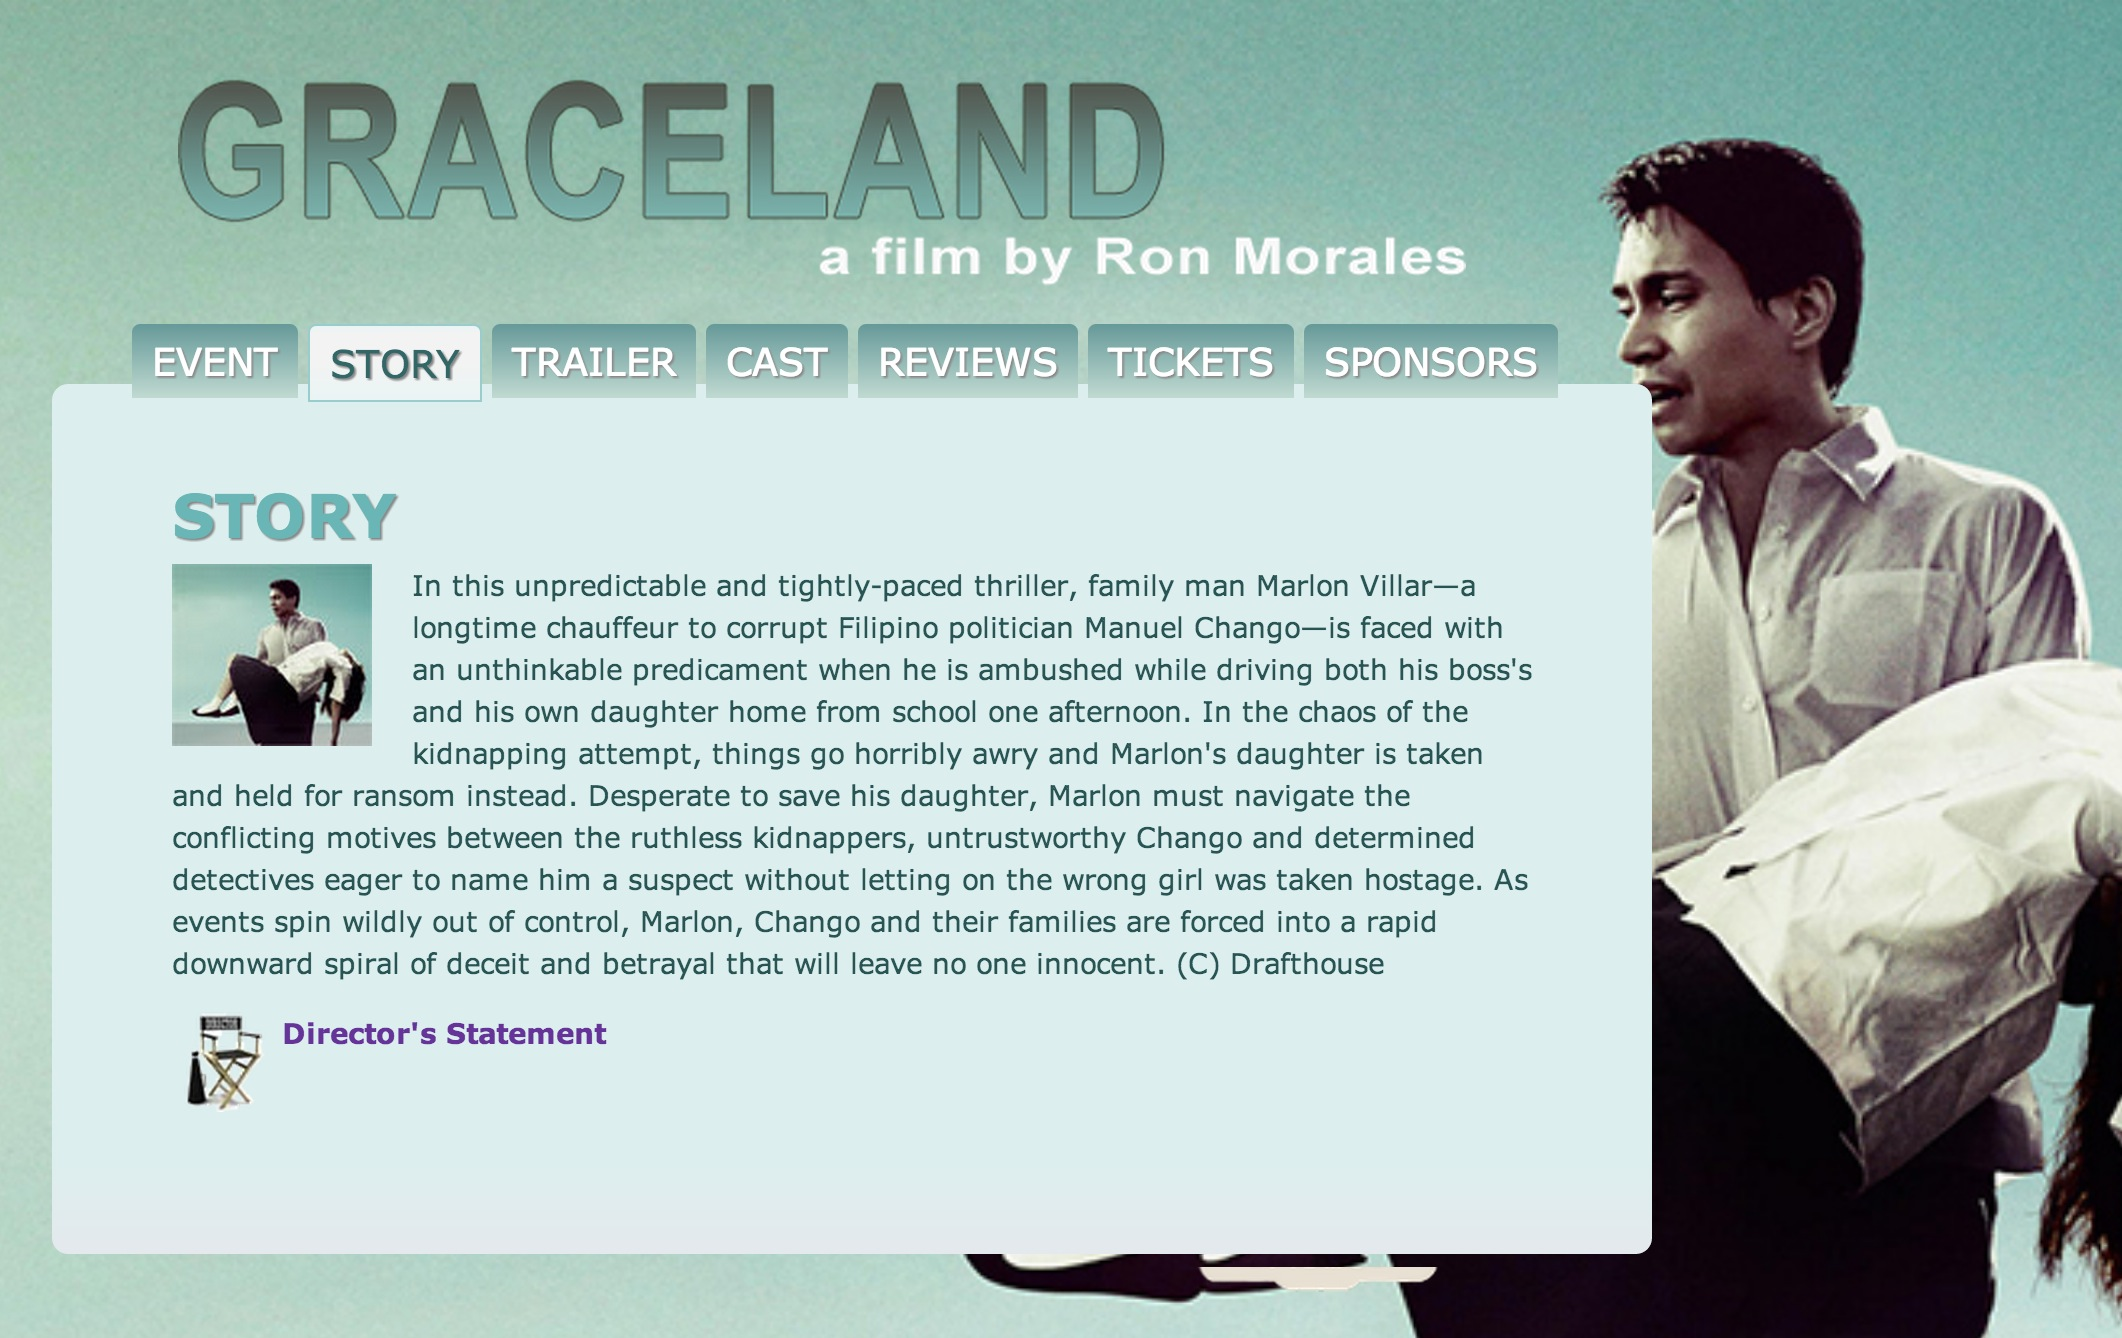 A Film Screening of GRACELAND, a Ron Morales Film Set for 10/6 in Arlignton